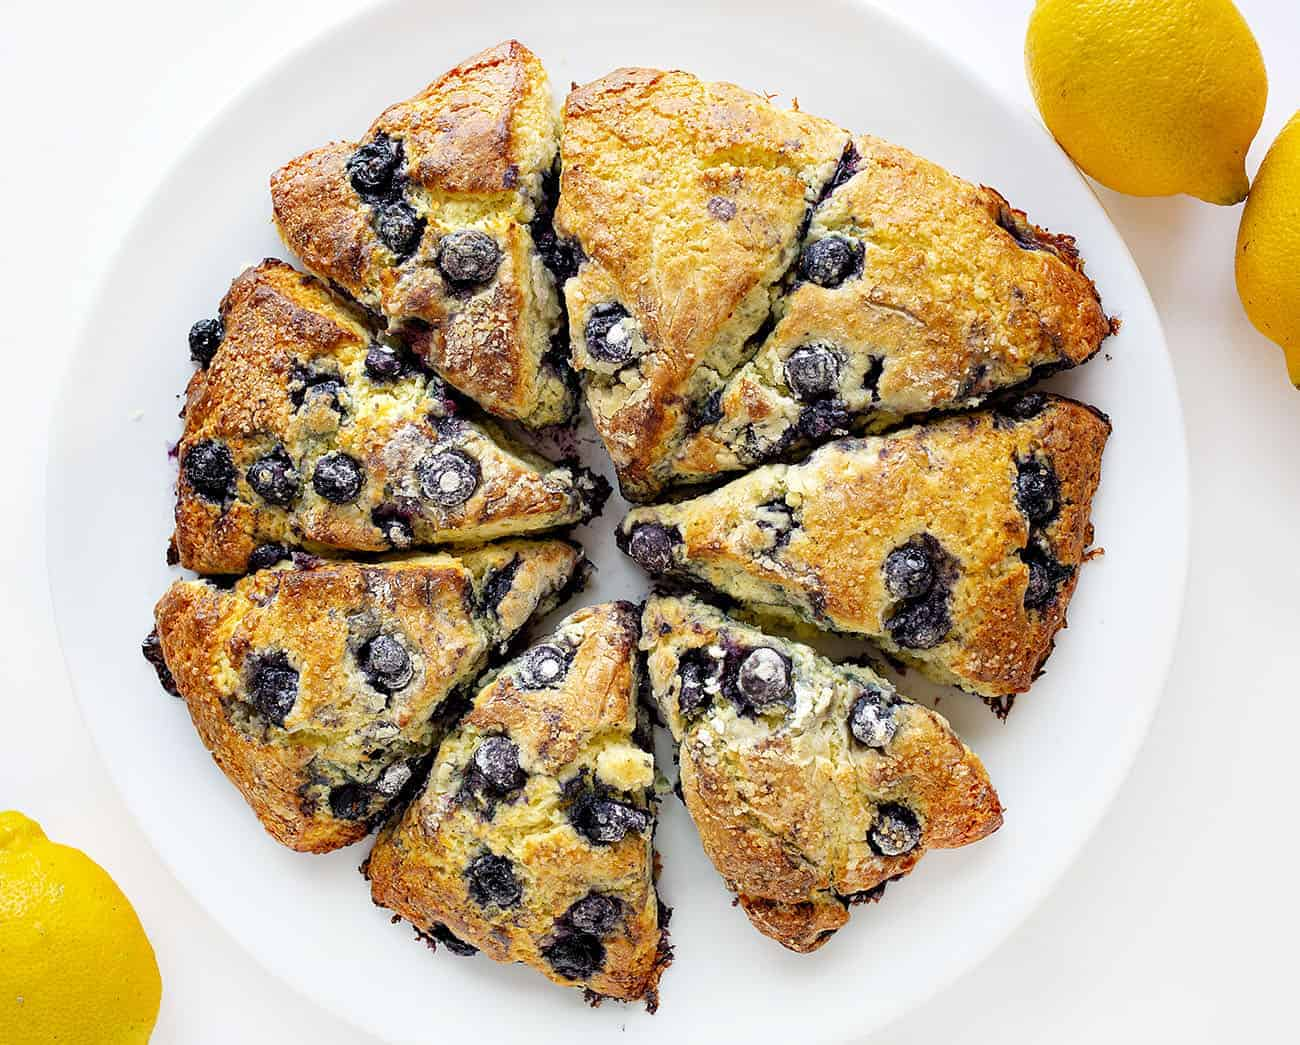 Overhead view of Plated Blueberry Scones